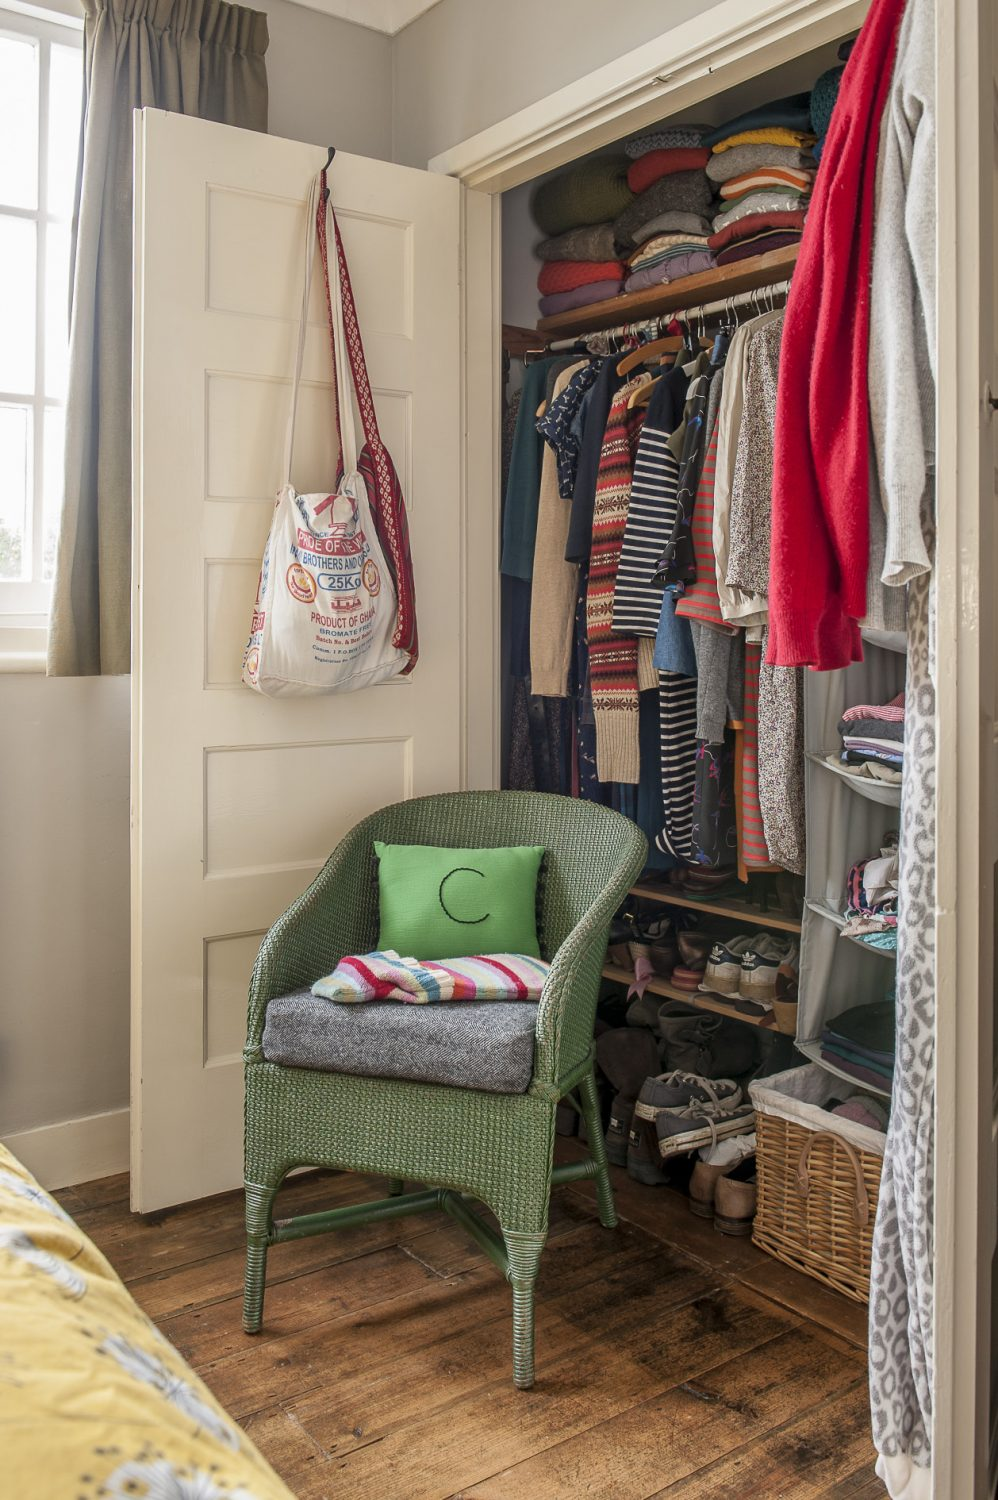 Chunky knits and bright fabrics hint at Claire's love of sewing and making, while a Lloyd Loom chair looks perfectly at home